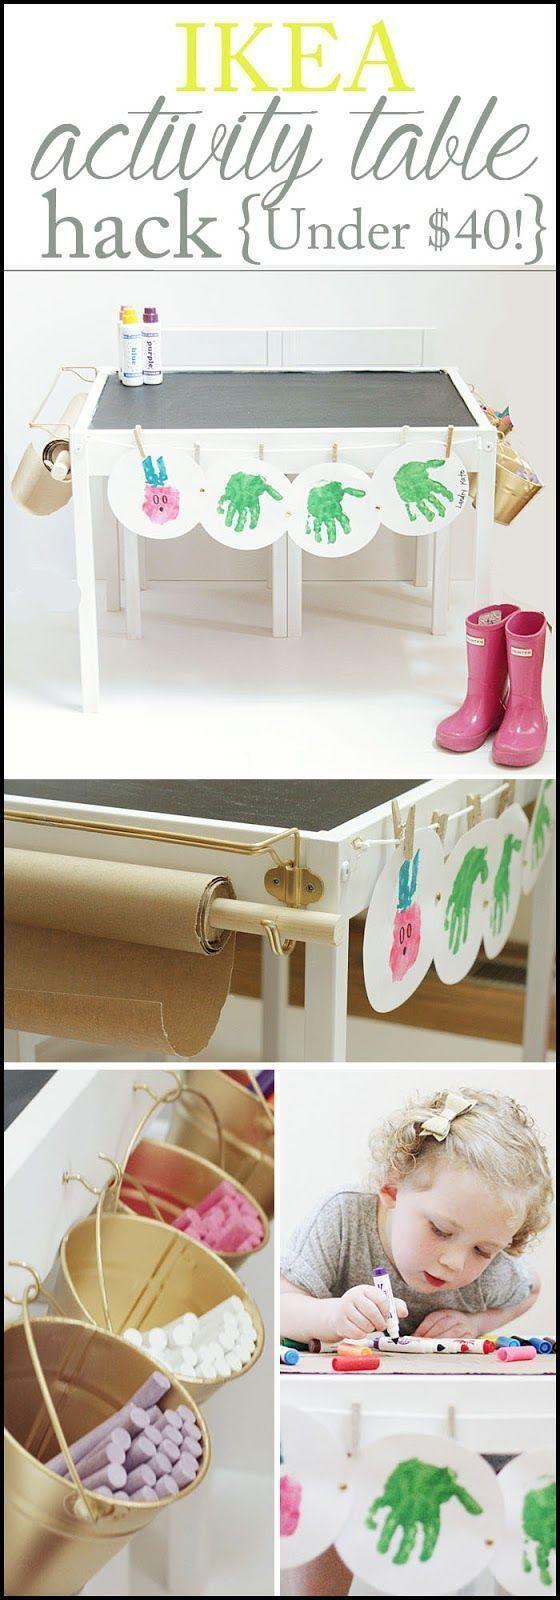 Ikea Hack | Latt Table turned into a toddler craft/play station for $40 total! | styleyoursenses.com